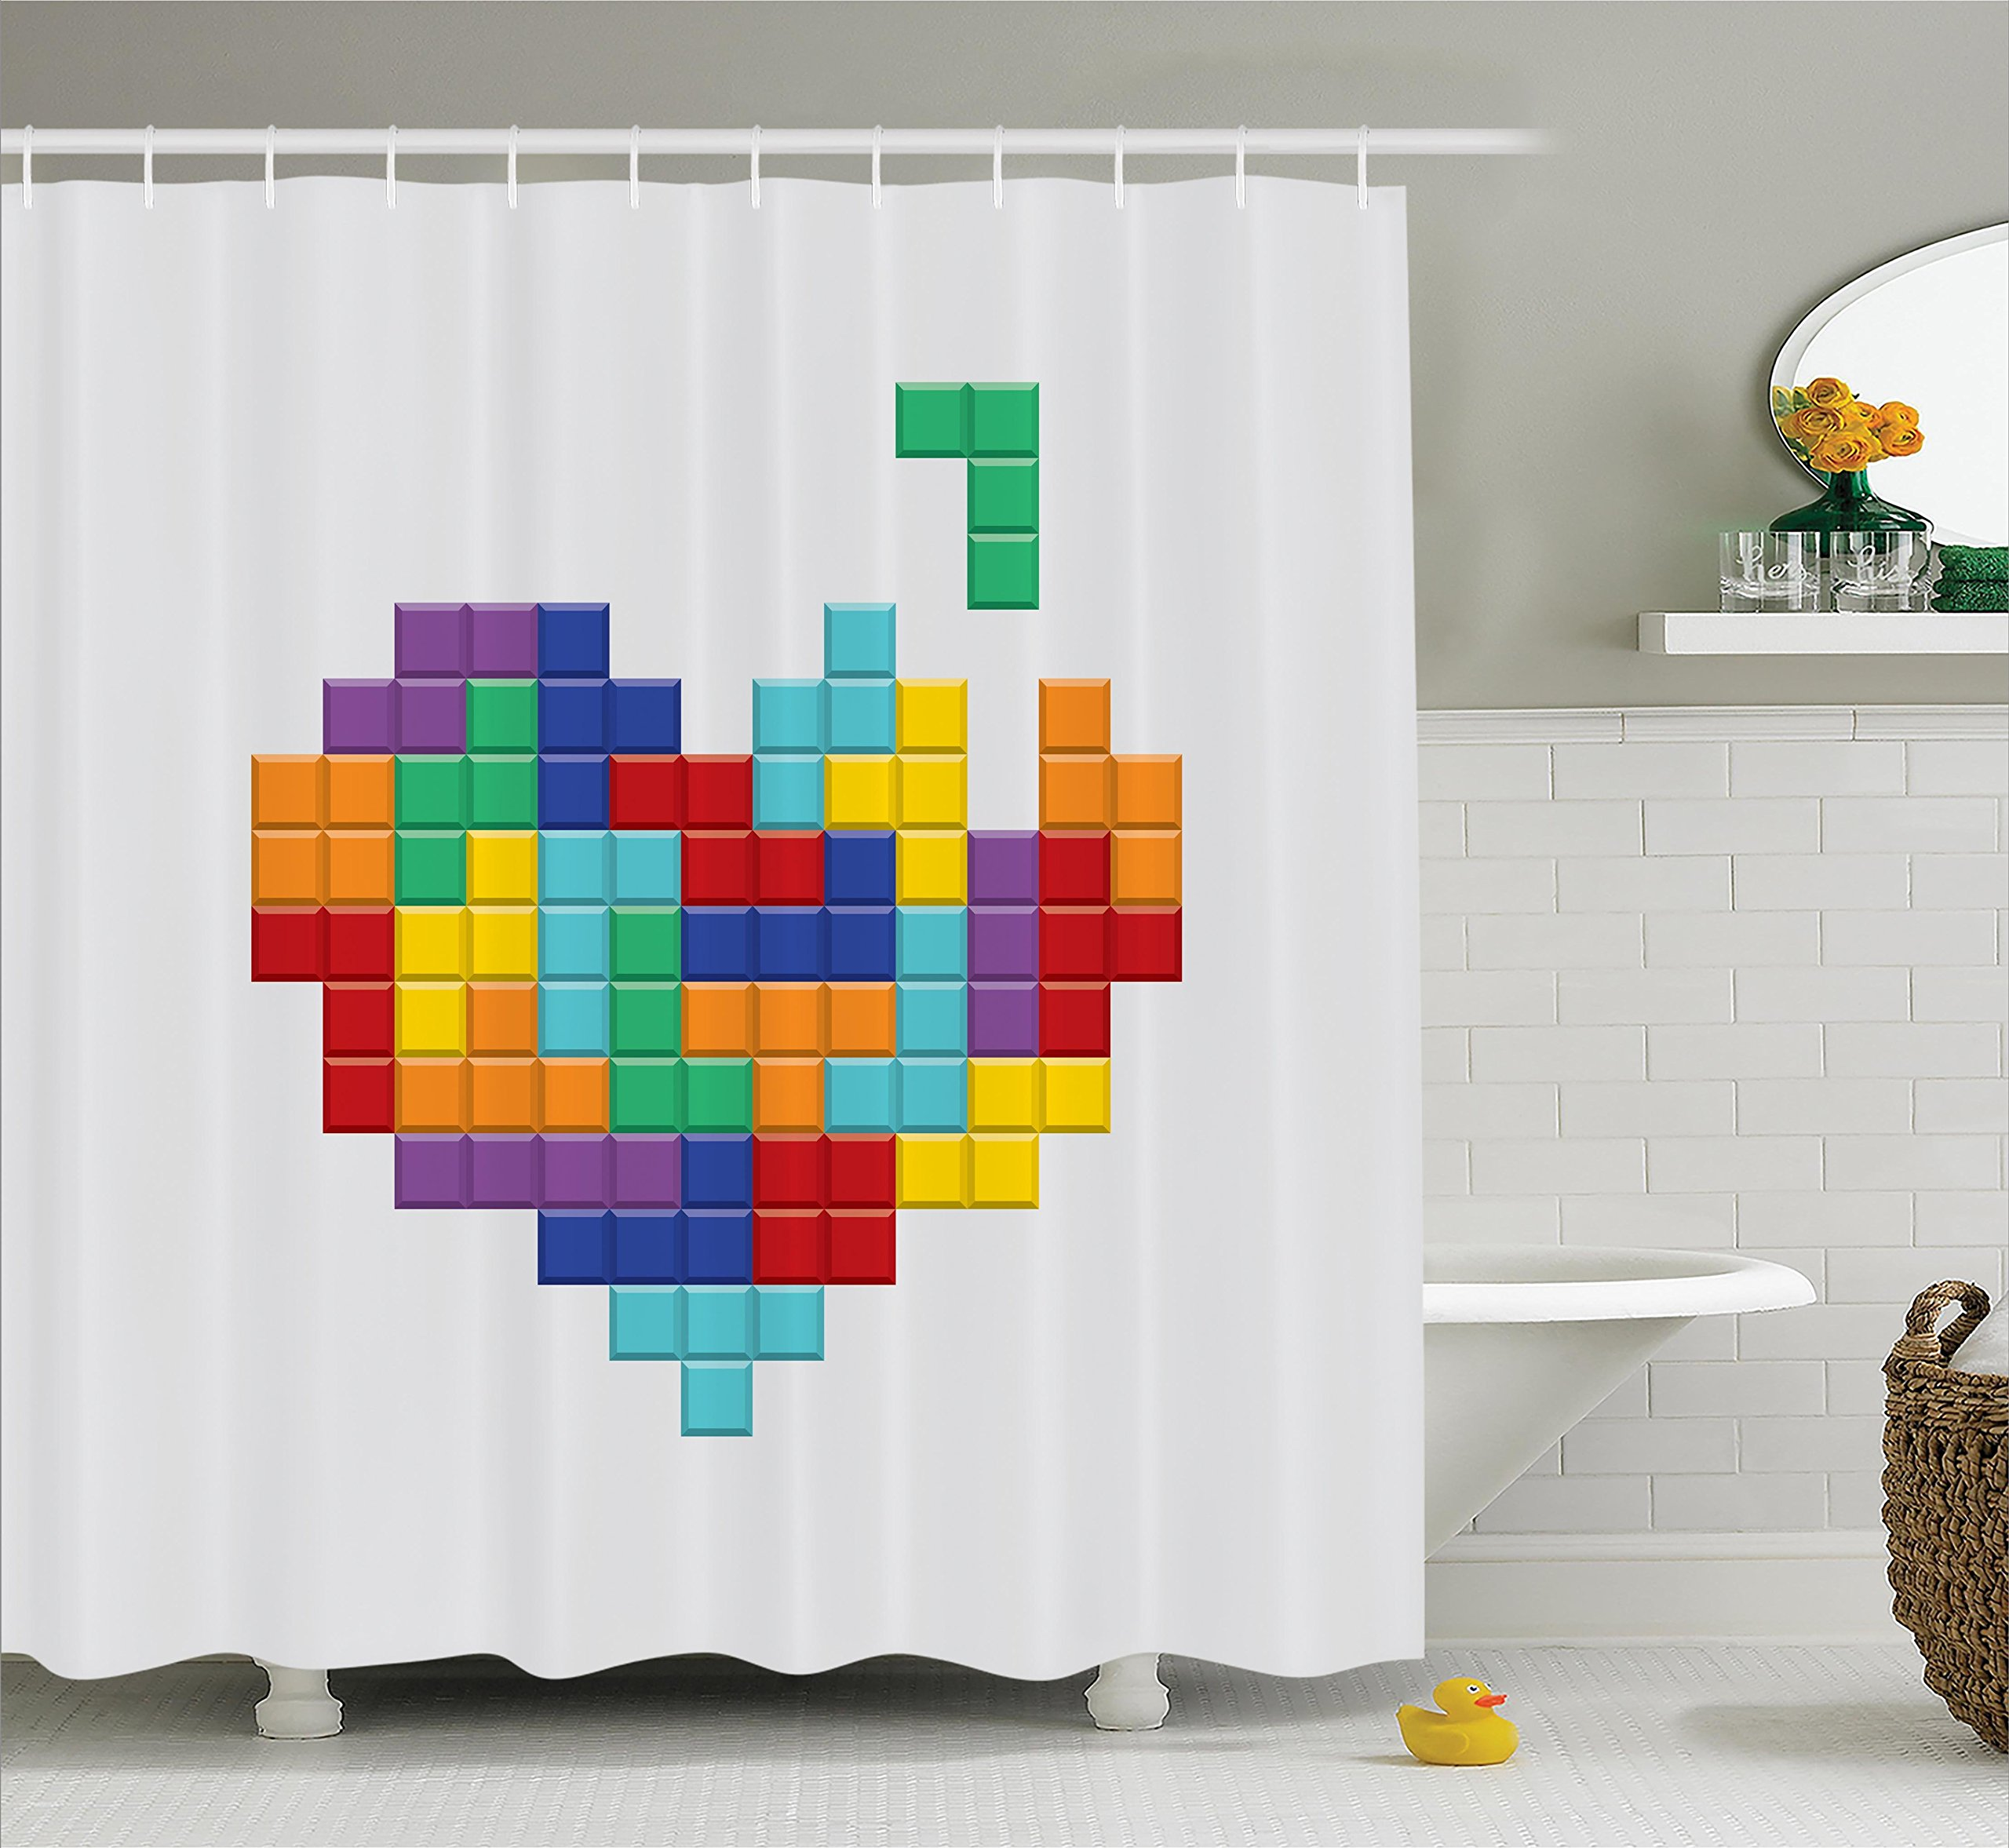 Video Games Shower Curtain Set 90s Decor by Ambesonne, Video Game Colorful Heart Blocks Valentines Day Celebration Joy Love Design Art Print, Fabric Bathroom Decorations with Hooks, Multicolor